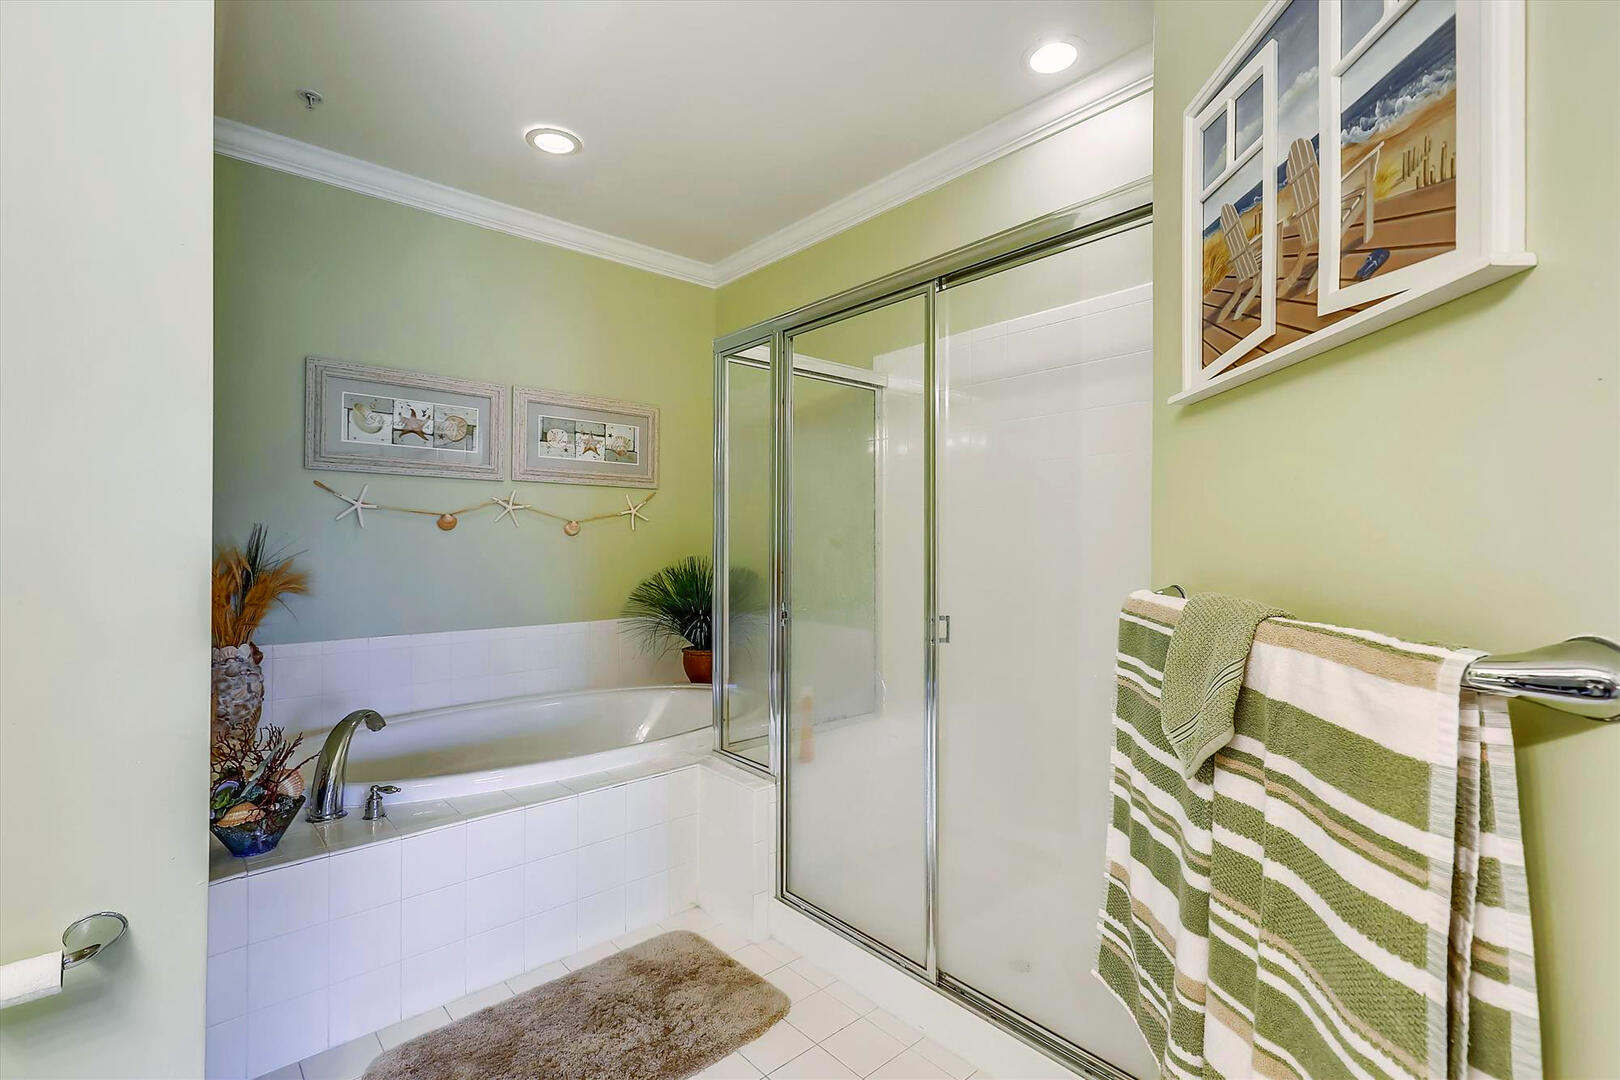 Master Bathroom of 37 Fountain Dr. W 3C in Sunset Island